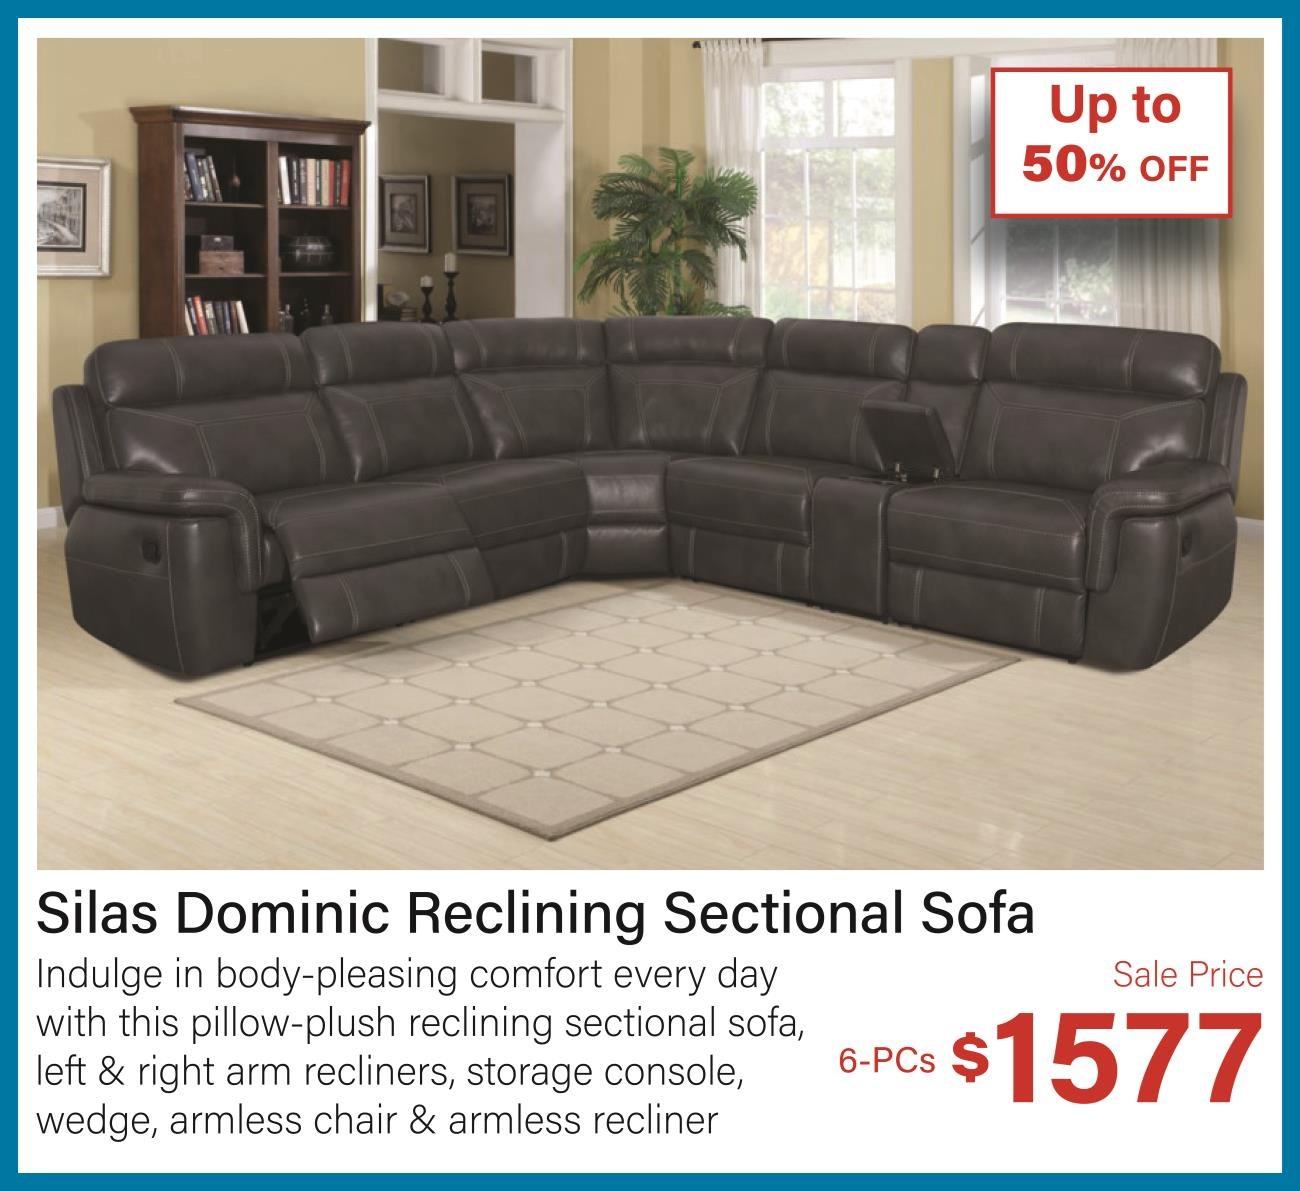 Silas dominic reclining sectional